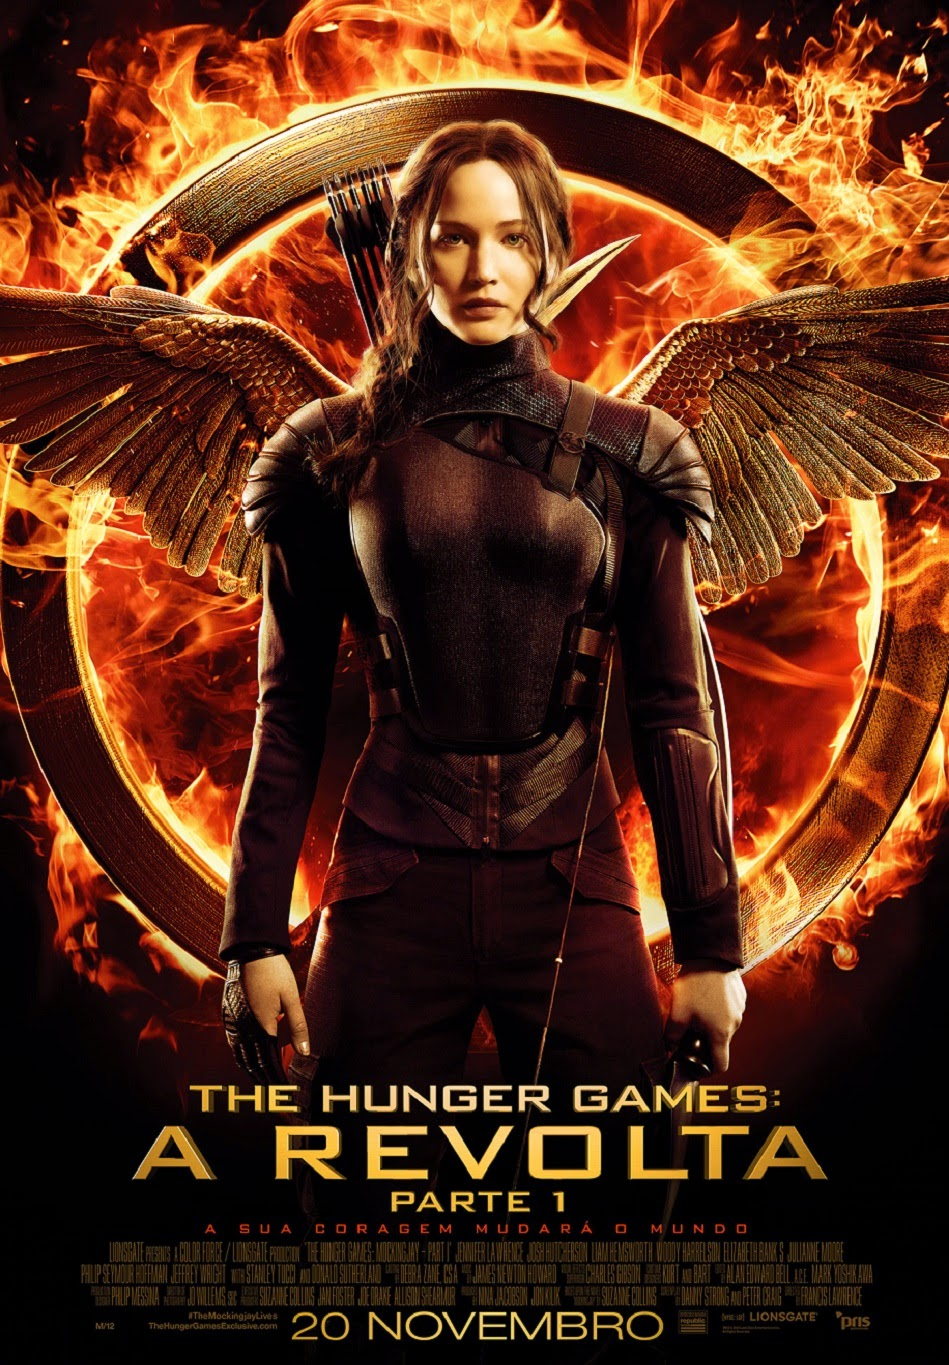 The Hunger Games: A Revolta – Parte 1